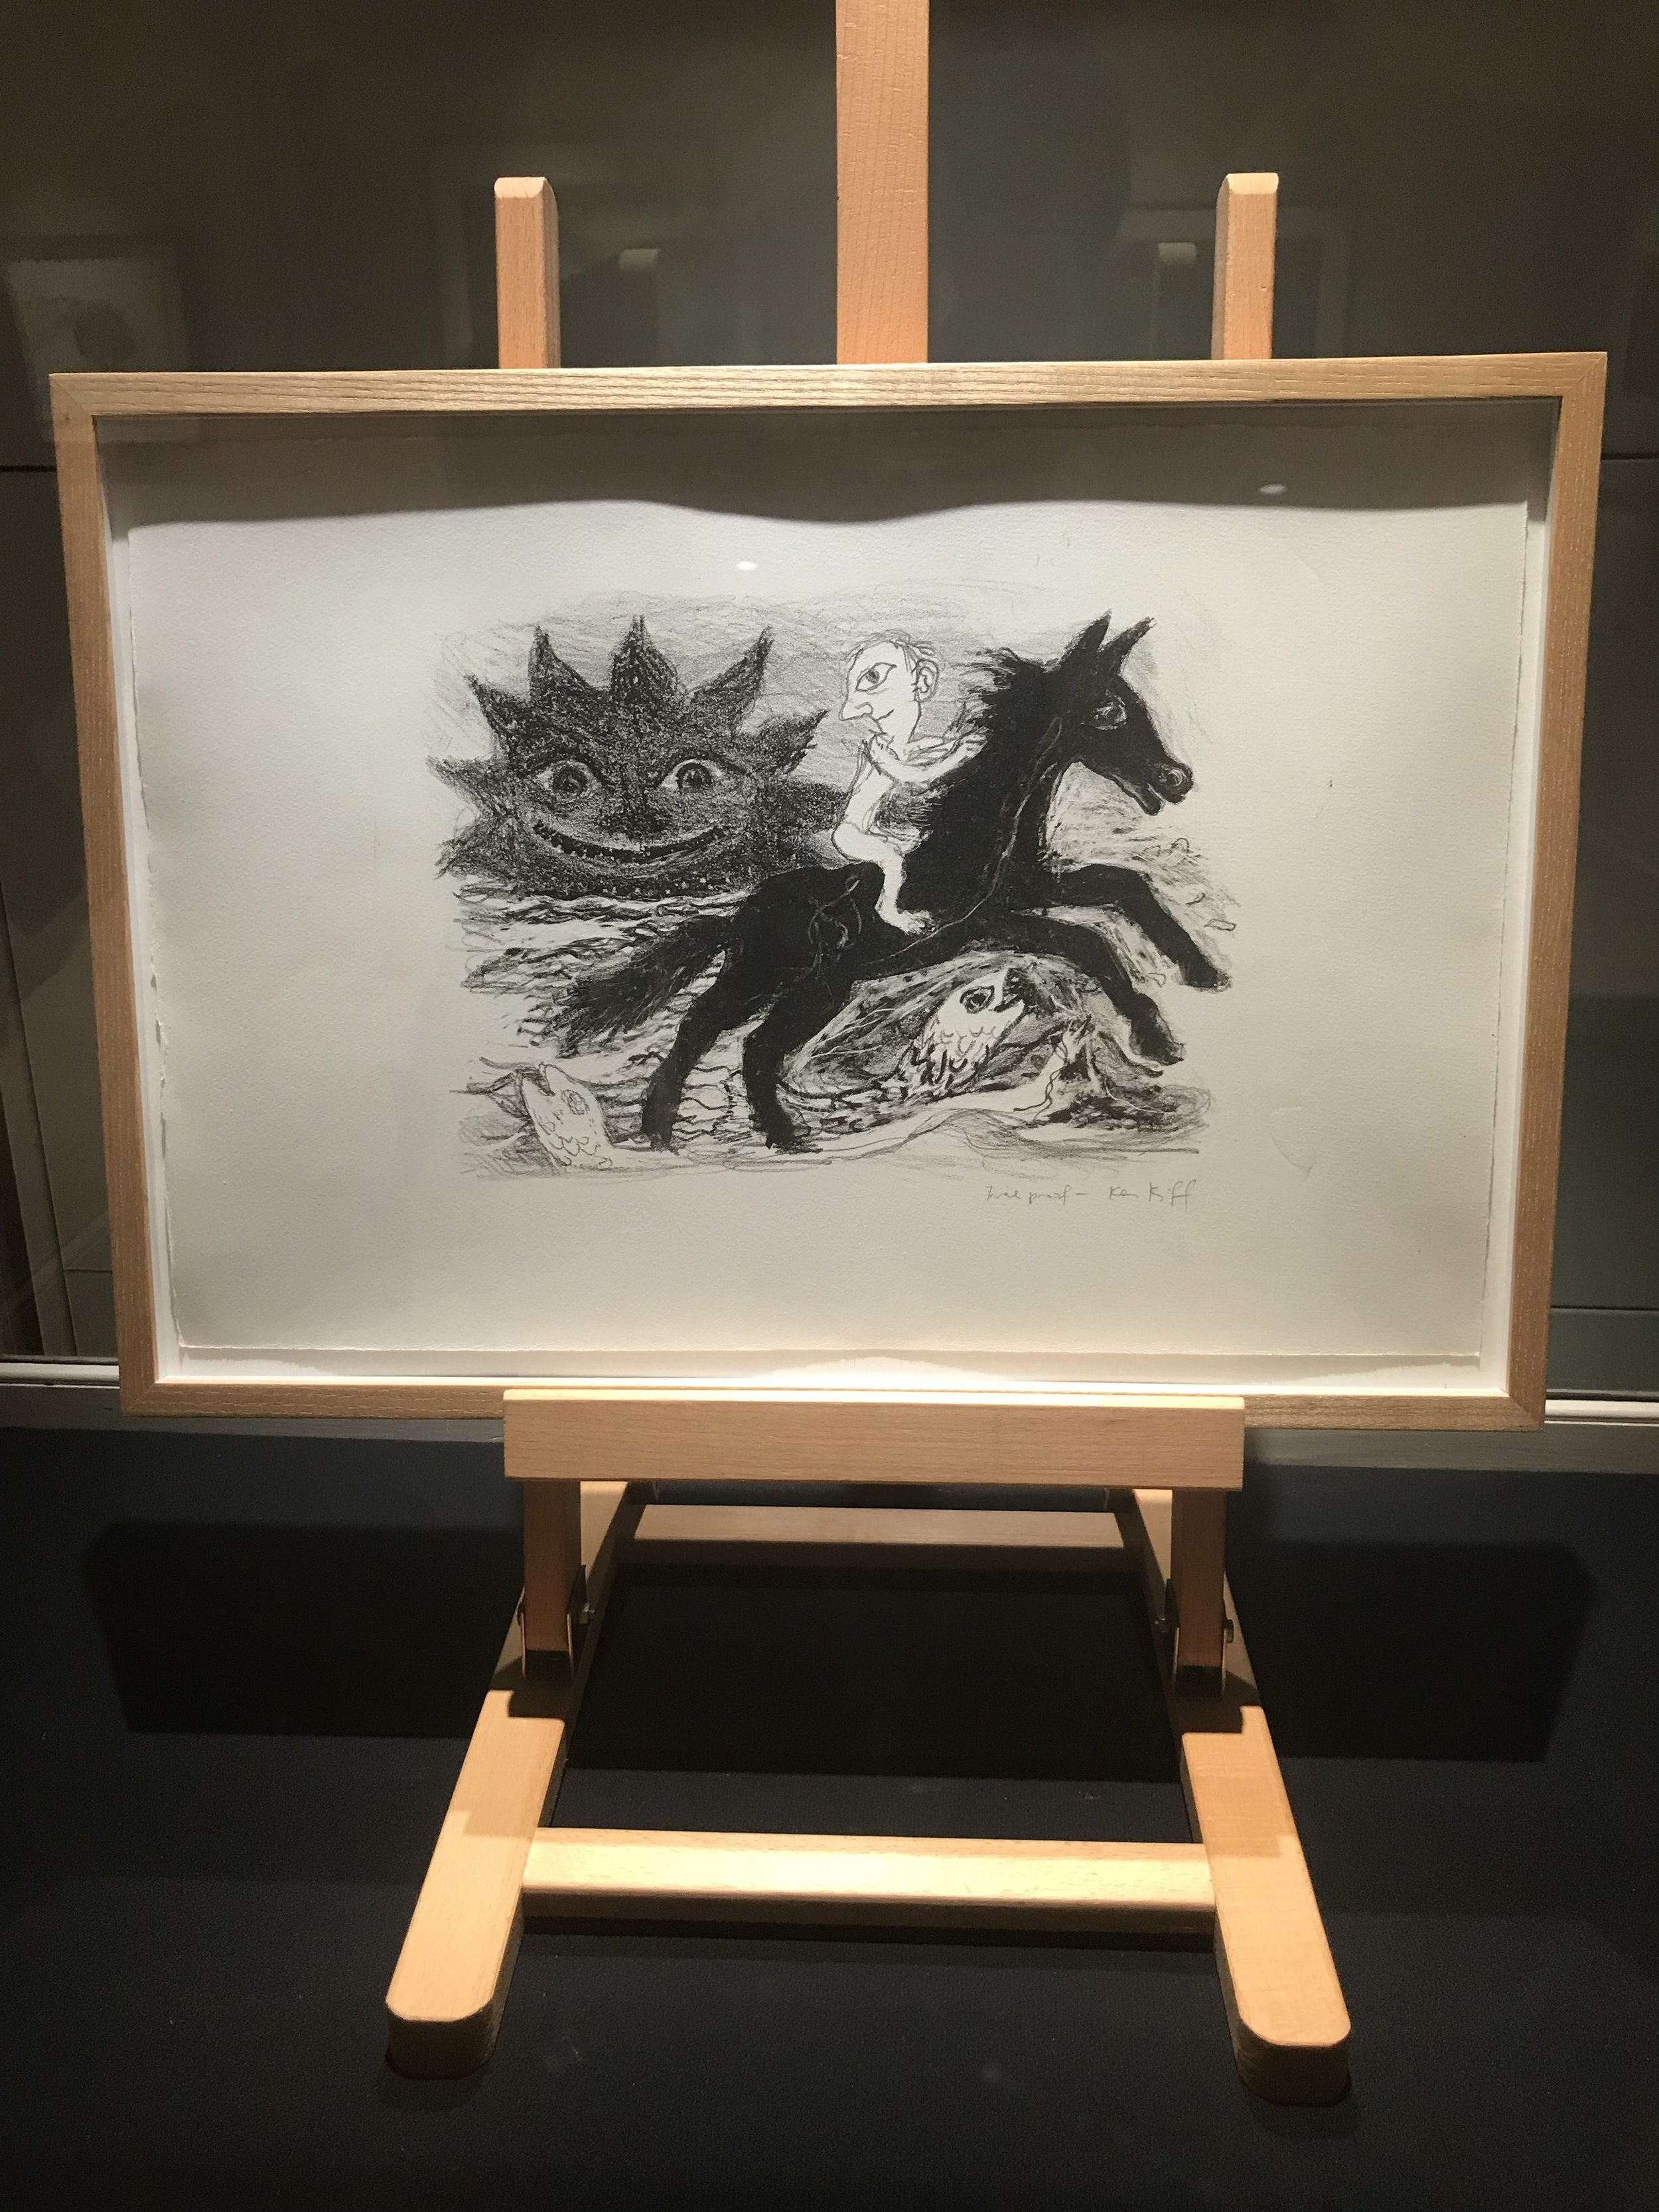 Man and Horse, 1995-1991